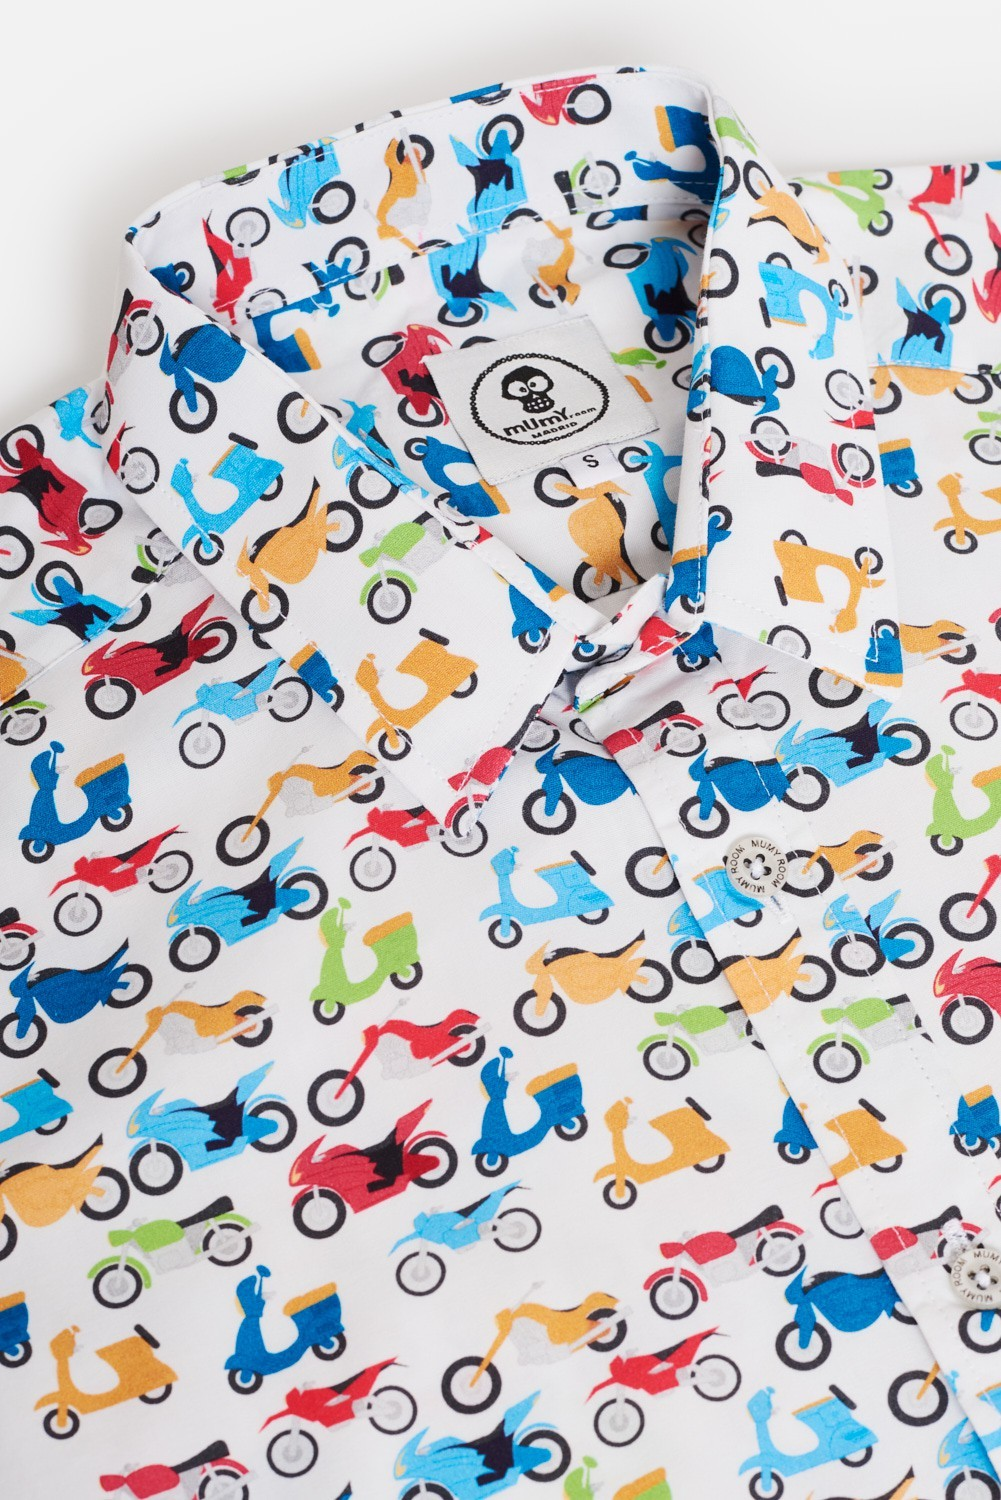 CAMISA ESTAMPADA UMAMI MOTOS COLORES